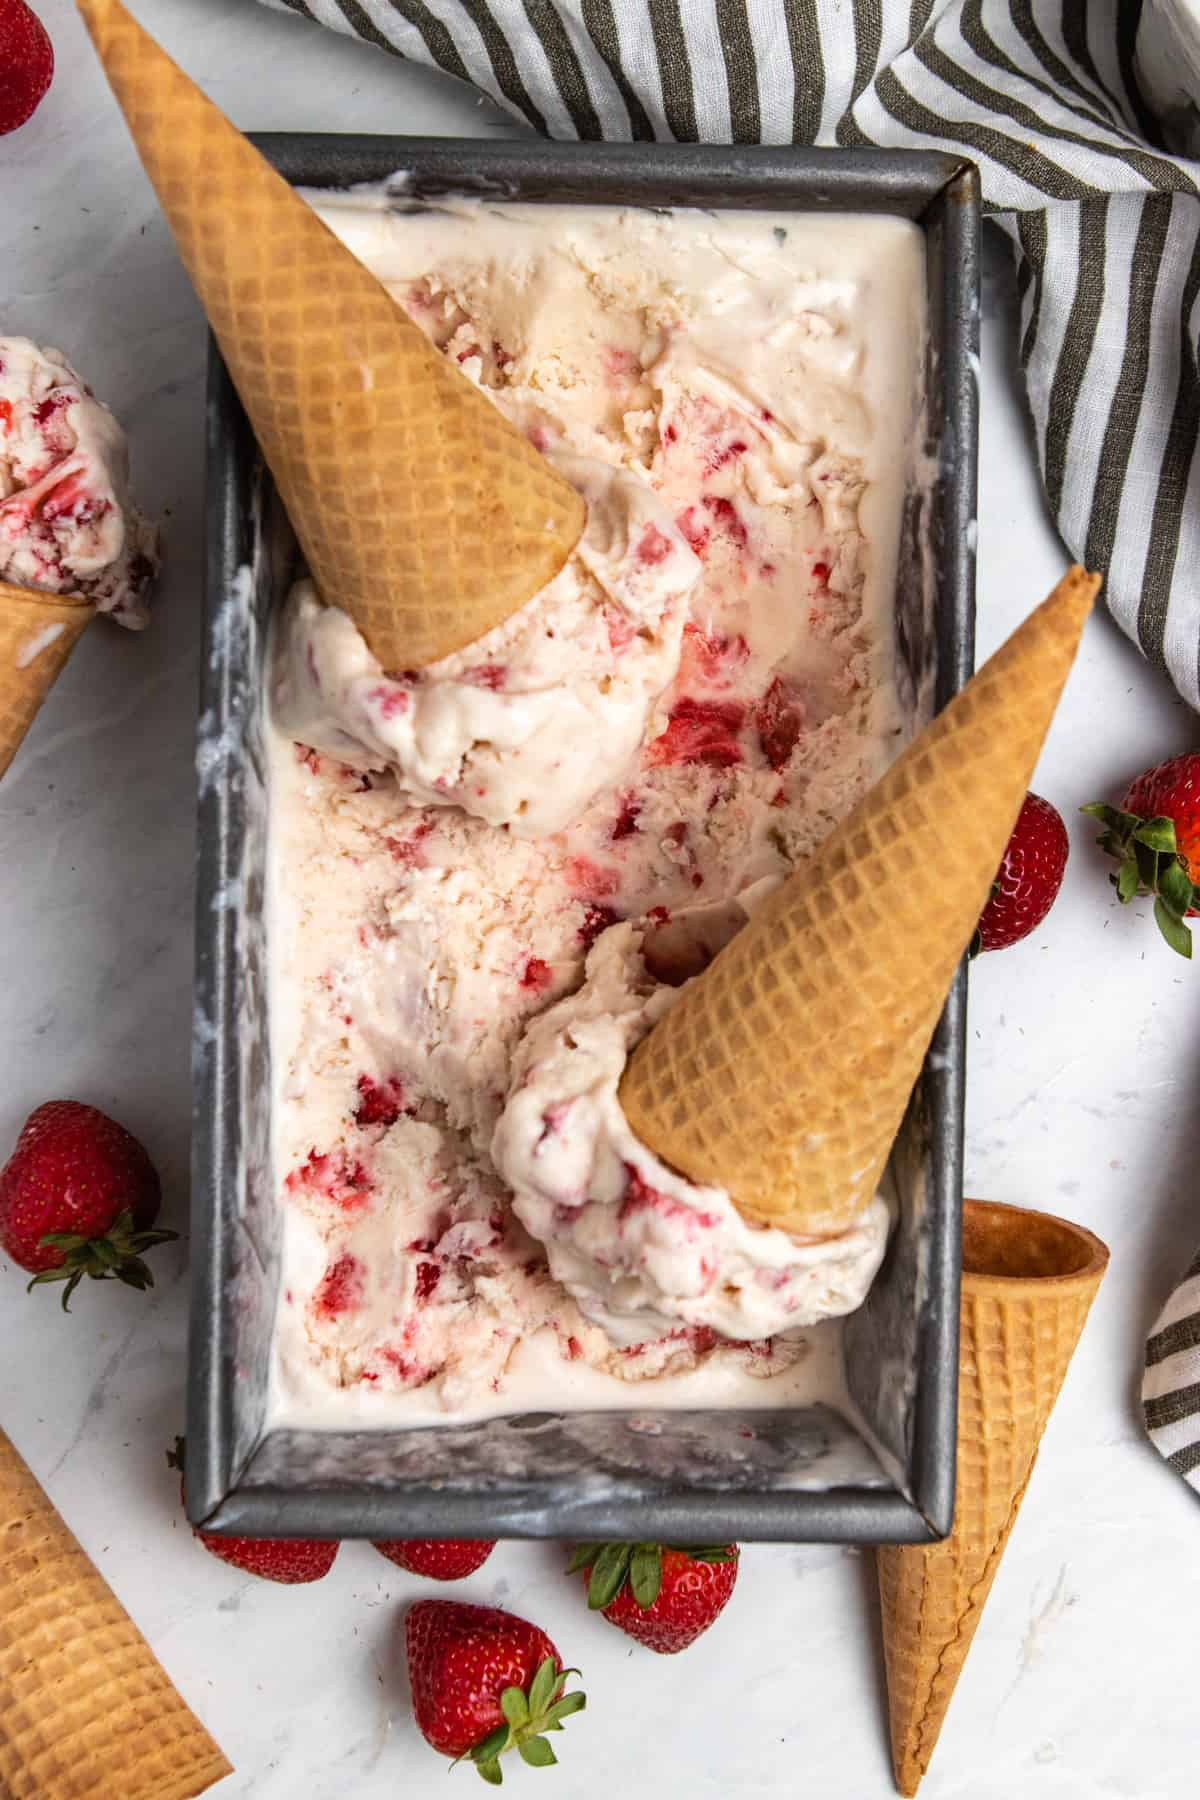 Strawberry ice cream in bread pan loaf with scoops and sugar cones.